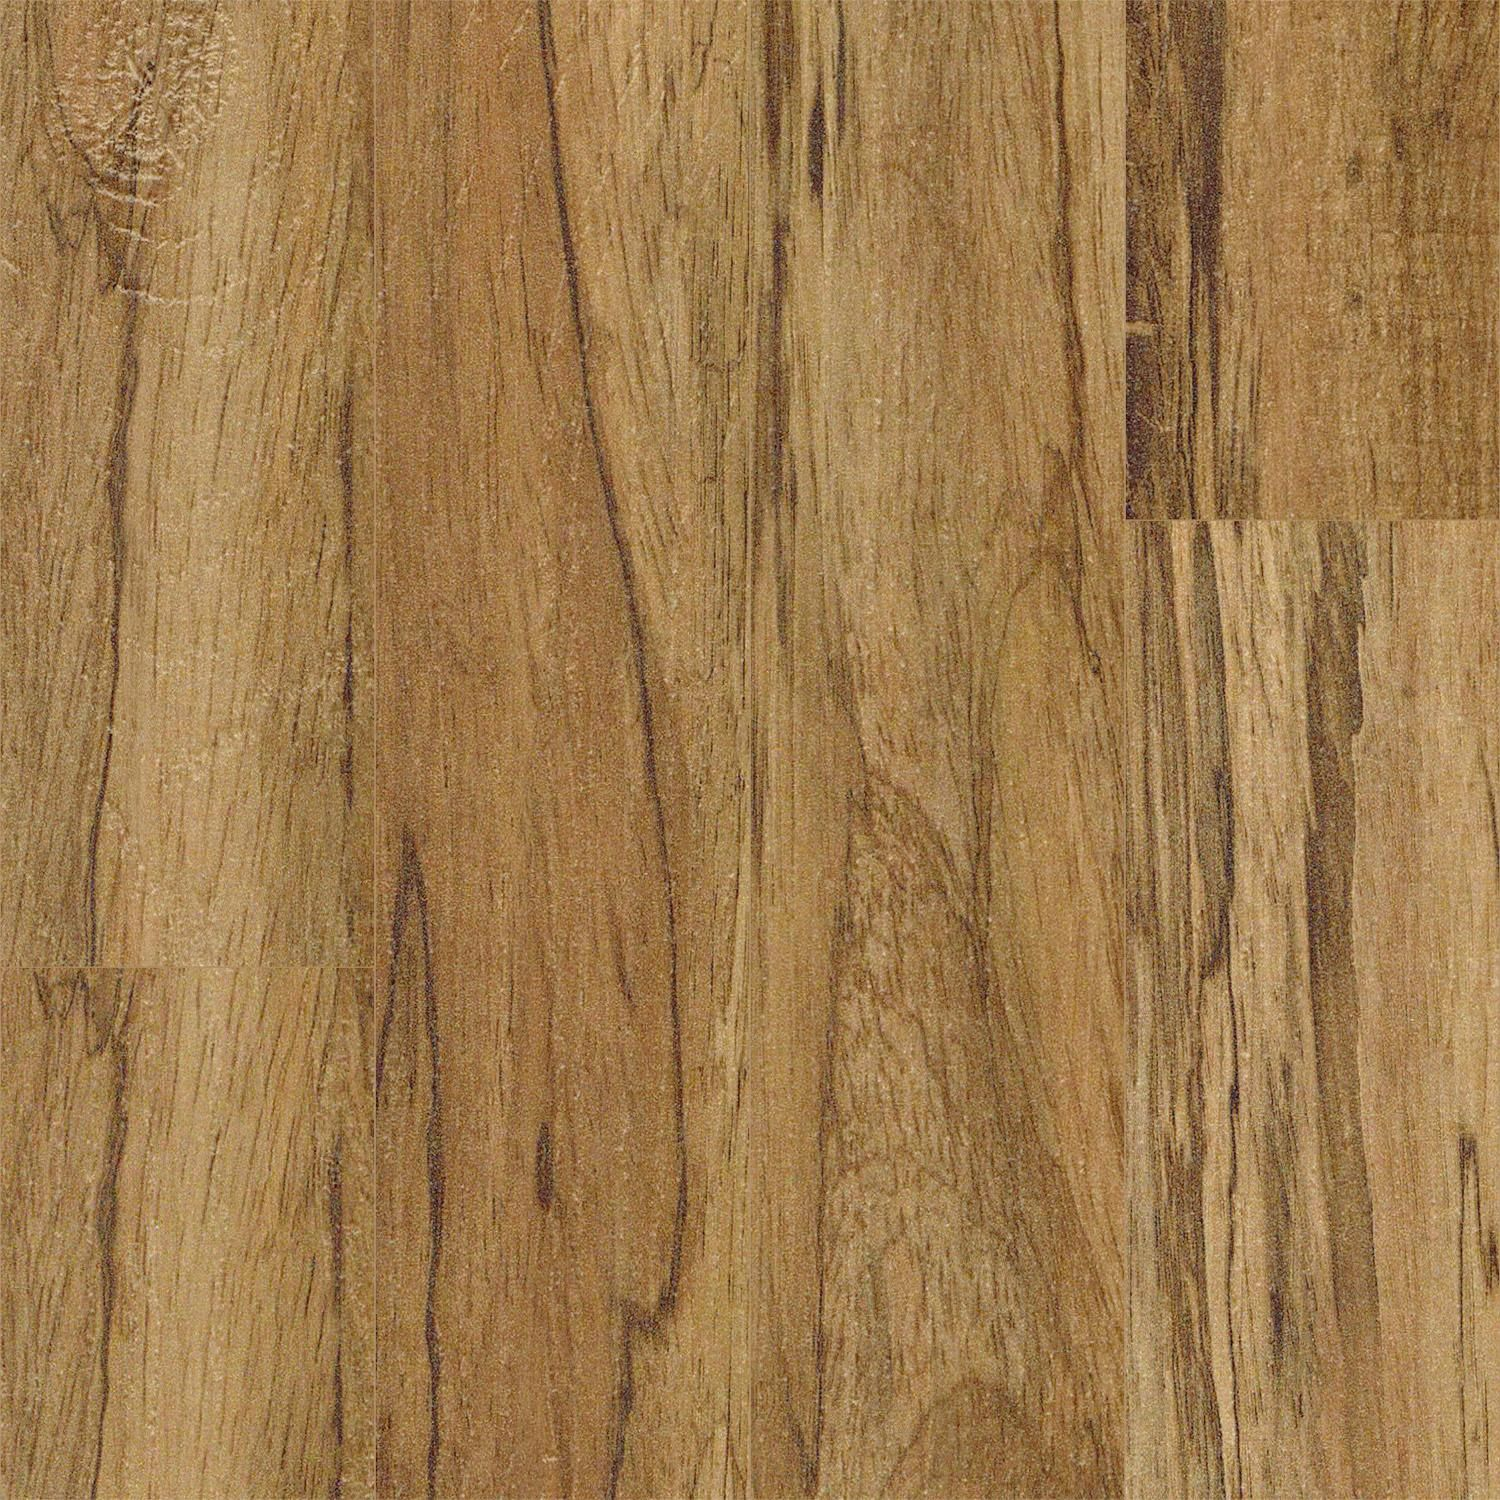 Autumn forest series 12mm thick 5 12 wide rustic olive laminate flooring